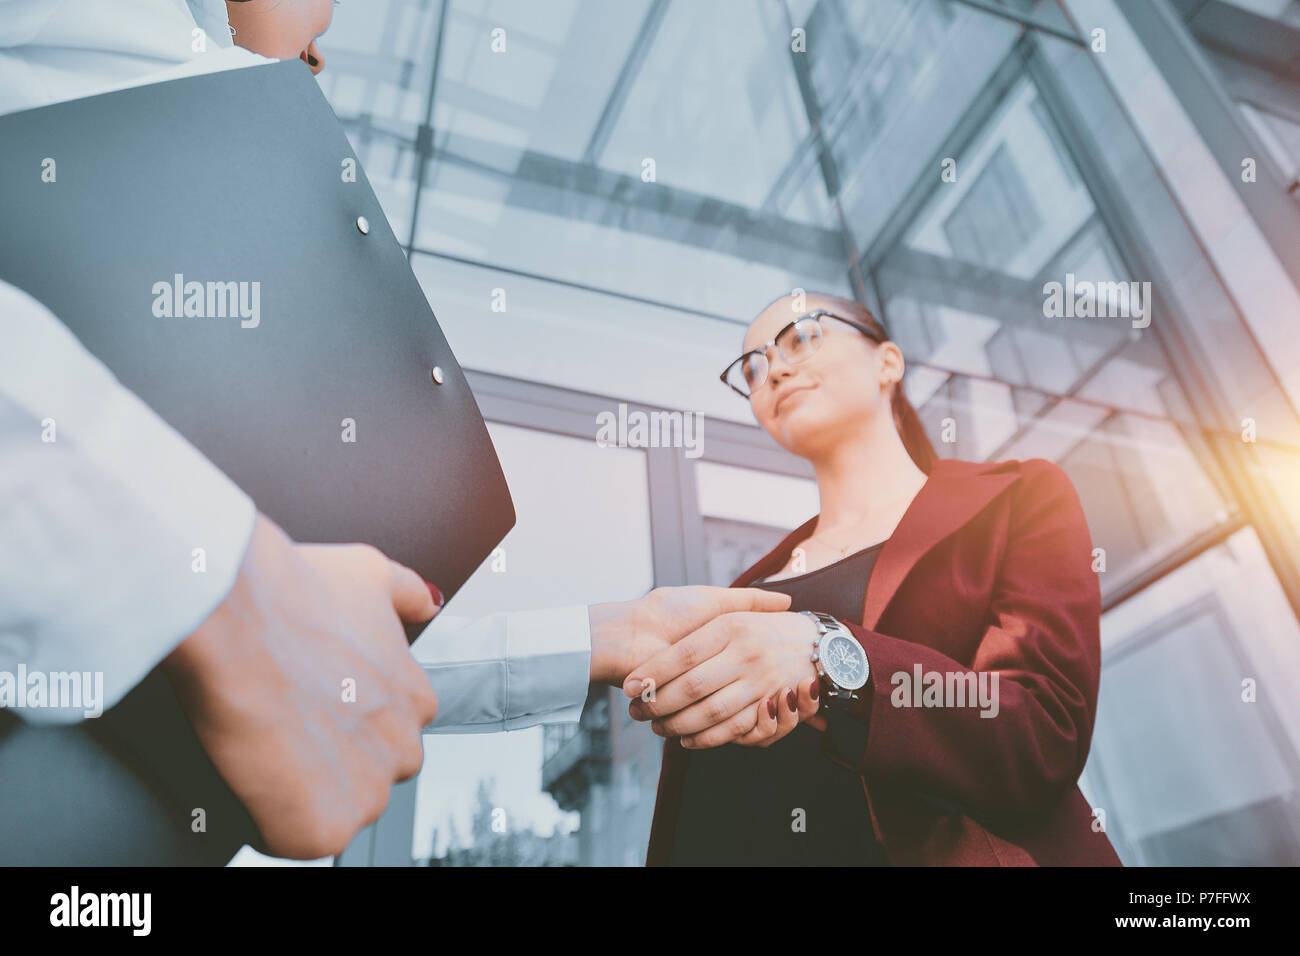 Handshake of two young girls against the background of a multi-storey office building. Make a deal. Friendly relations. Office staff. - Stock Image